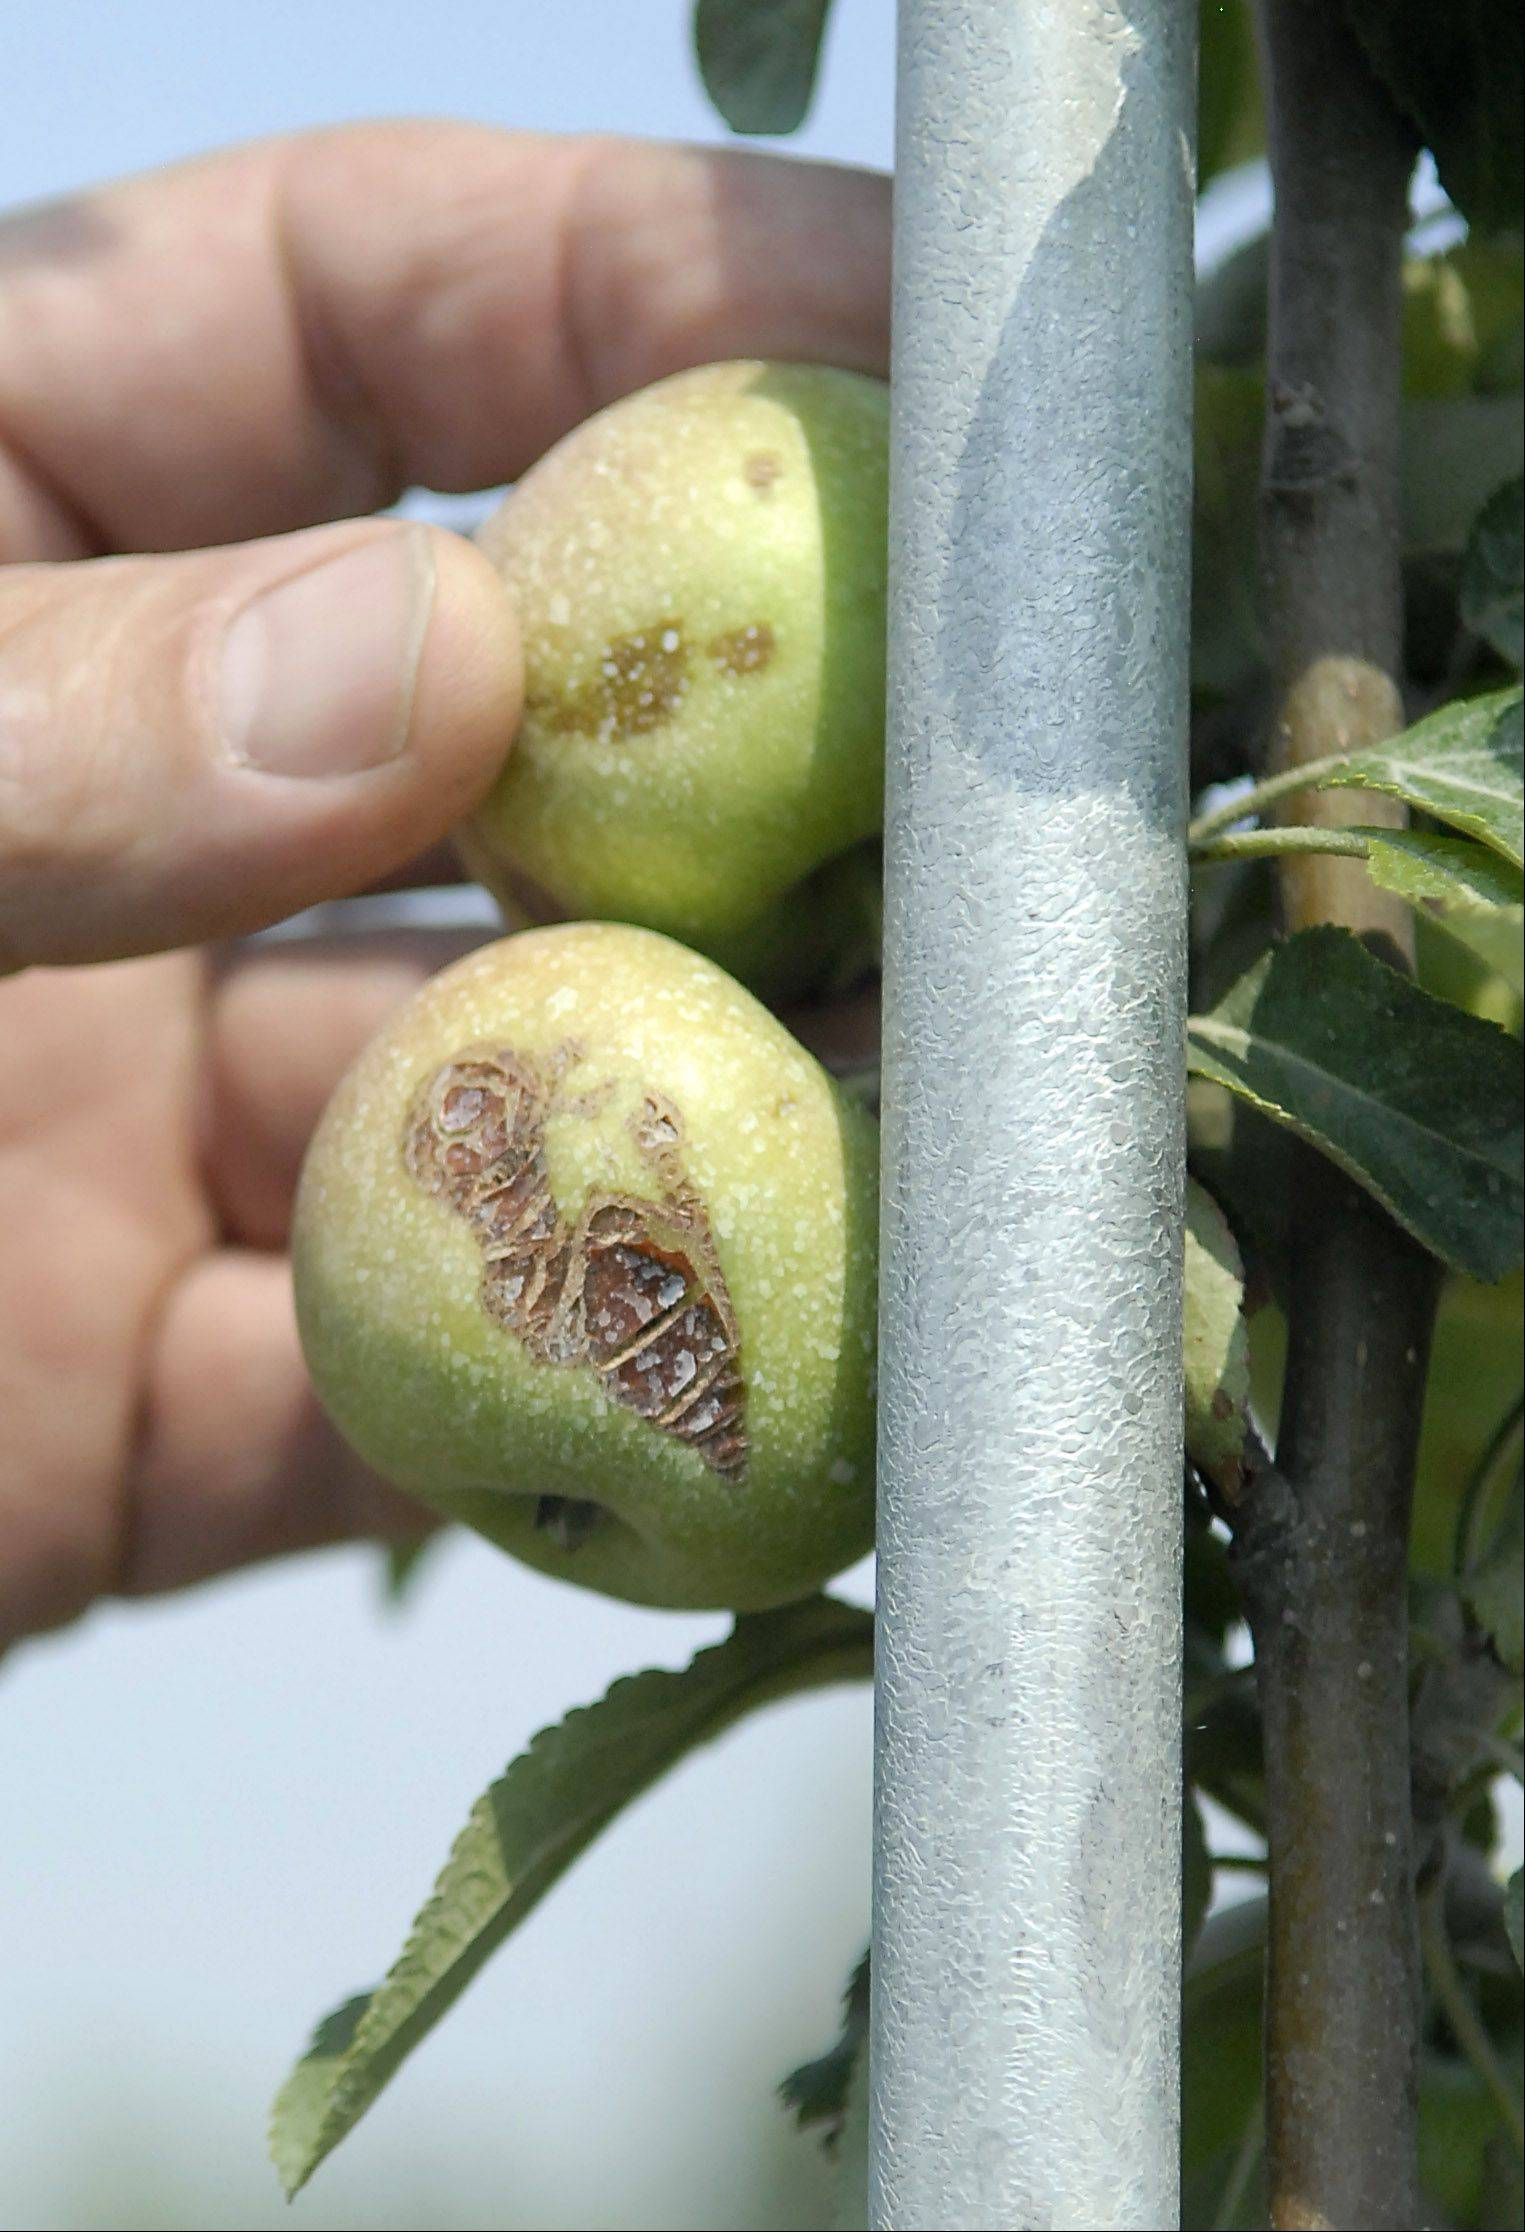 Damaged skin shows how frost affected these Jonathan apples at Kuipers Family Farm in Maple Park.